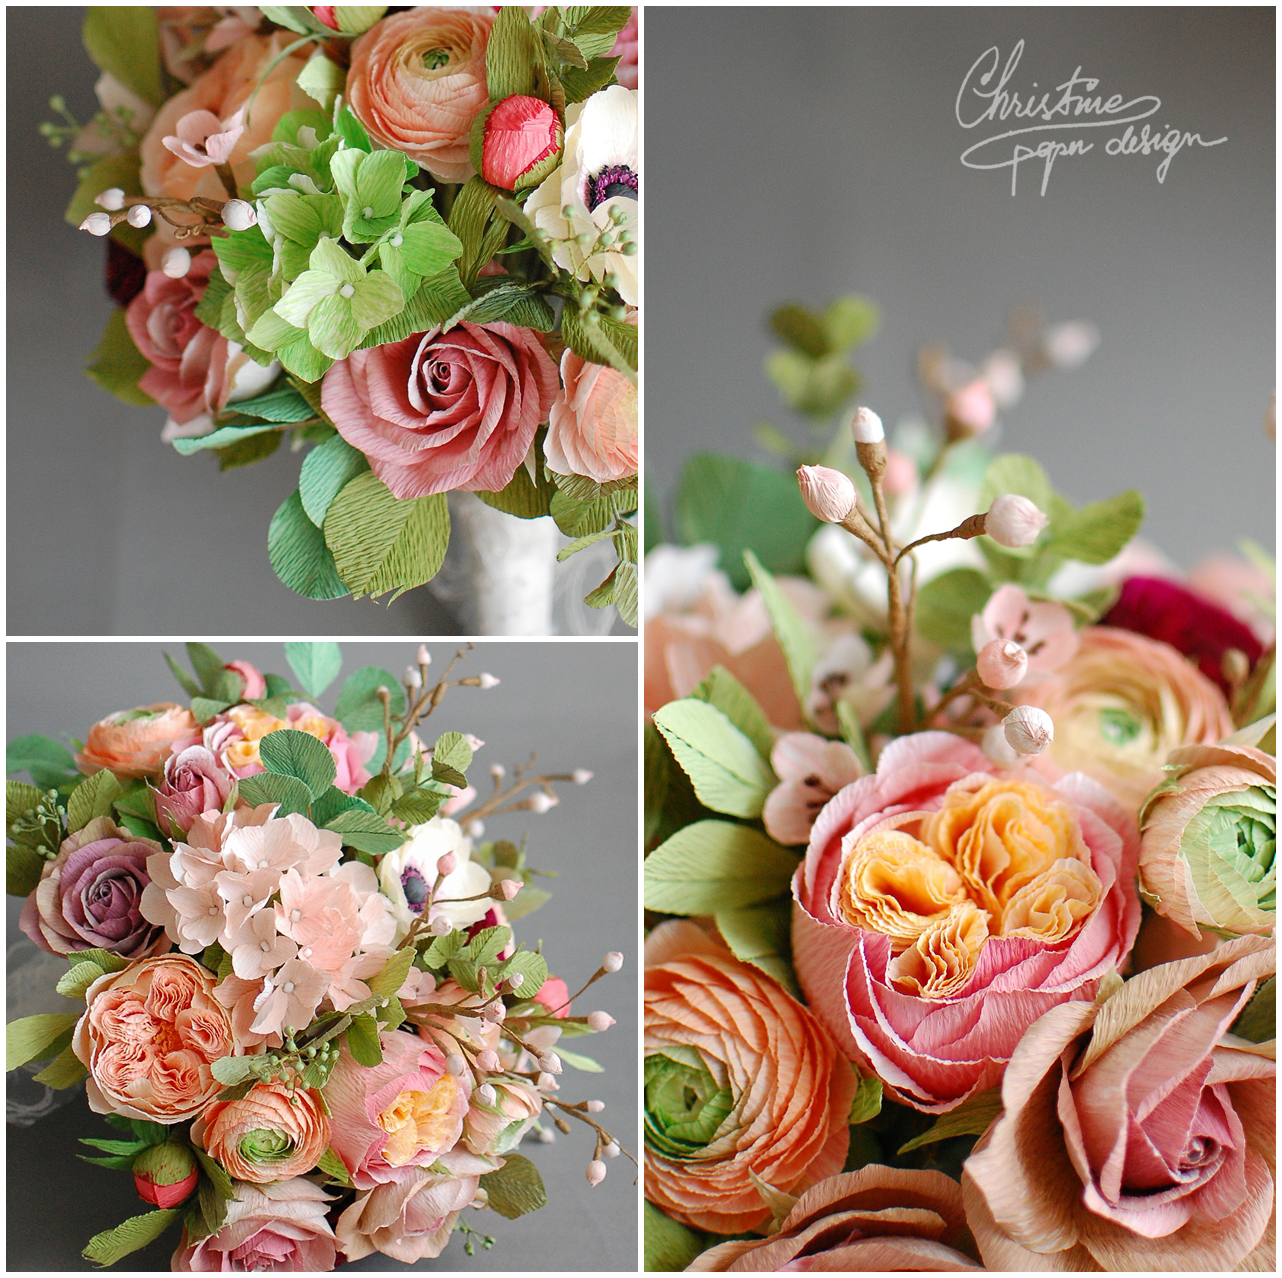 paper flower bridal bouquet - Christine paper design (4)